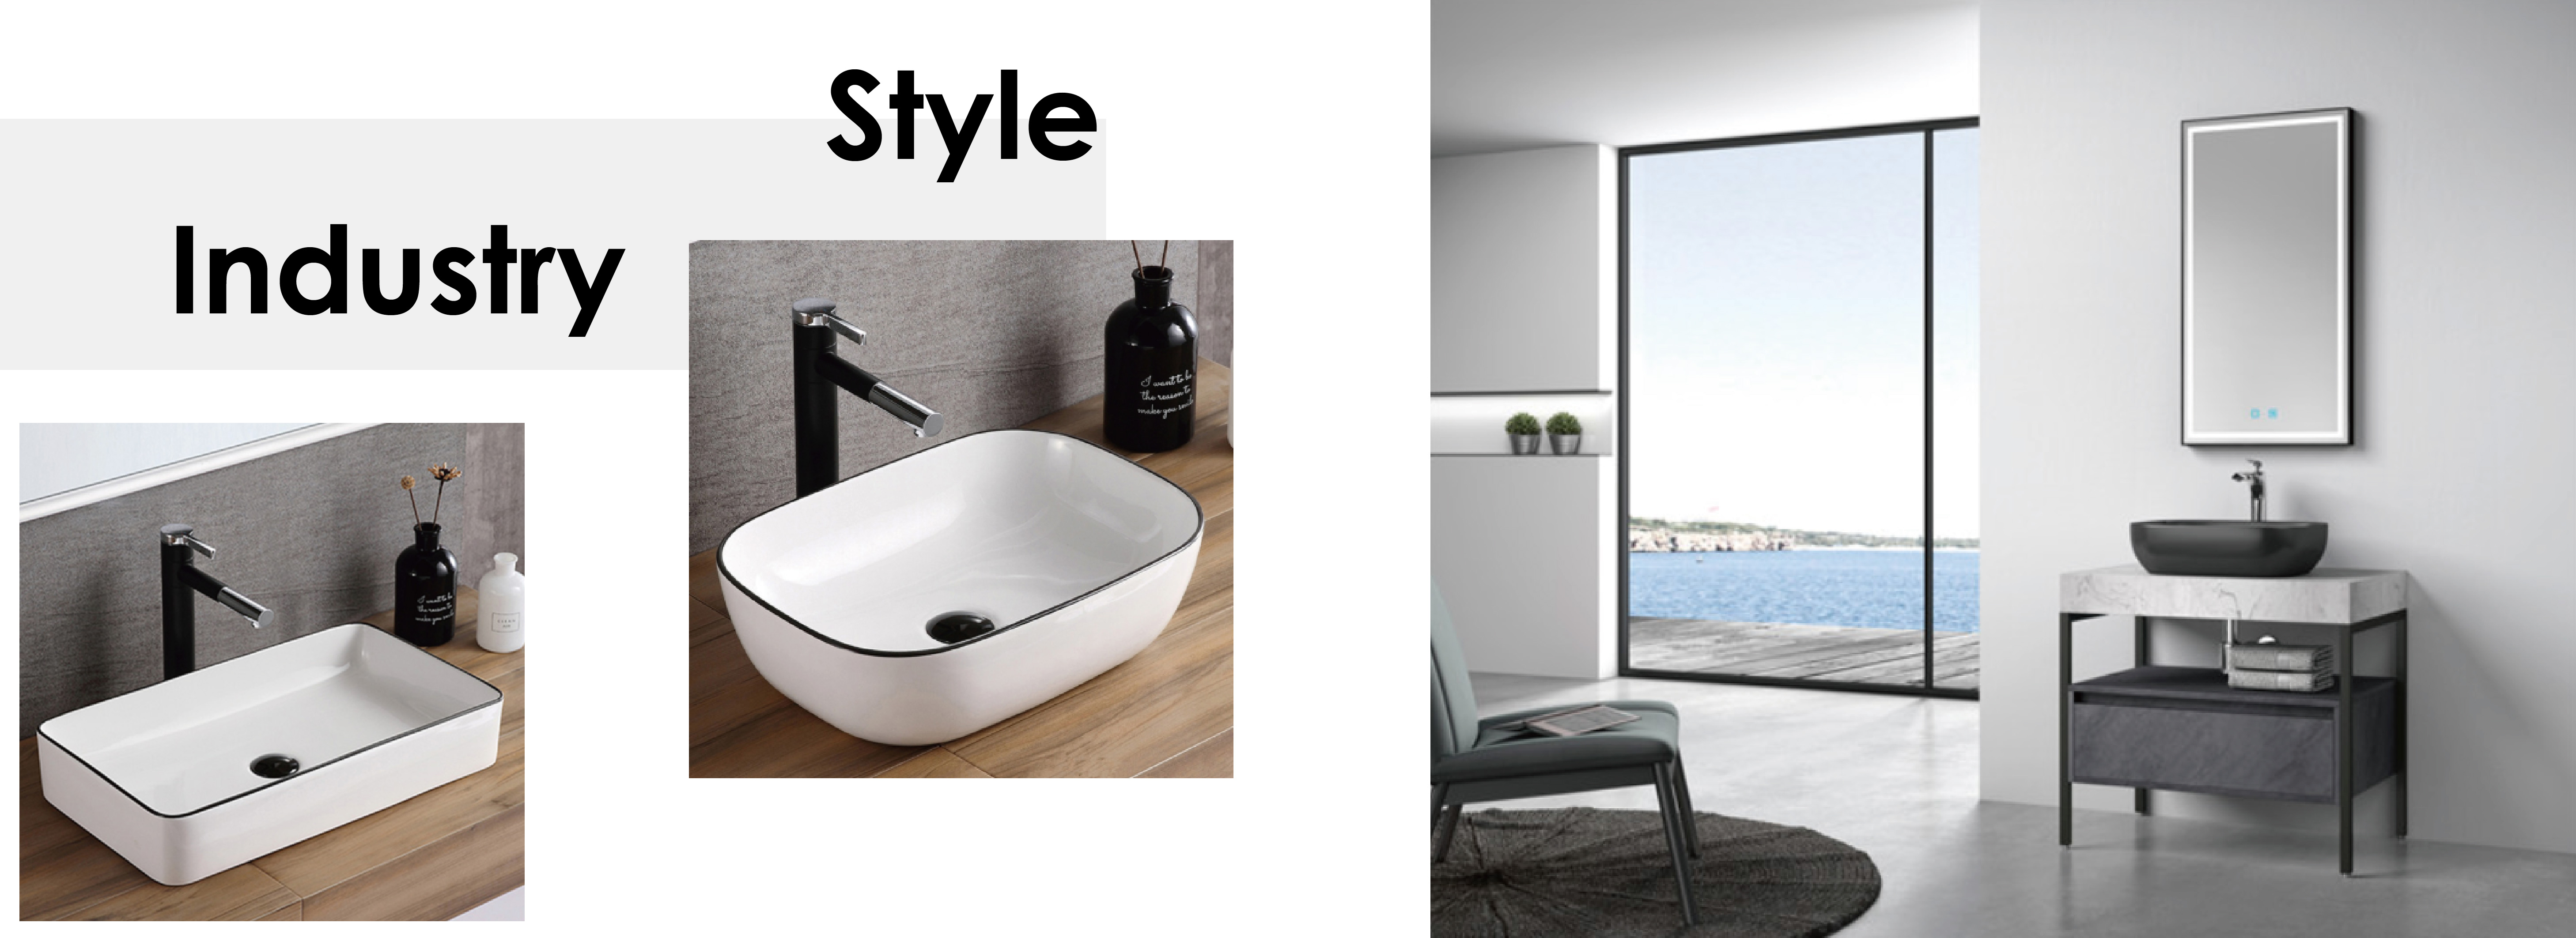 Industry Style Bathroom Cabinet-01